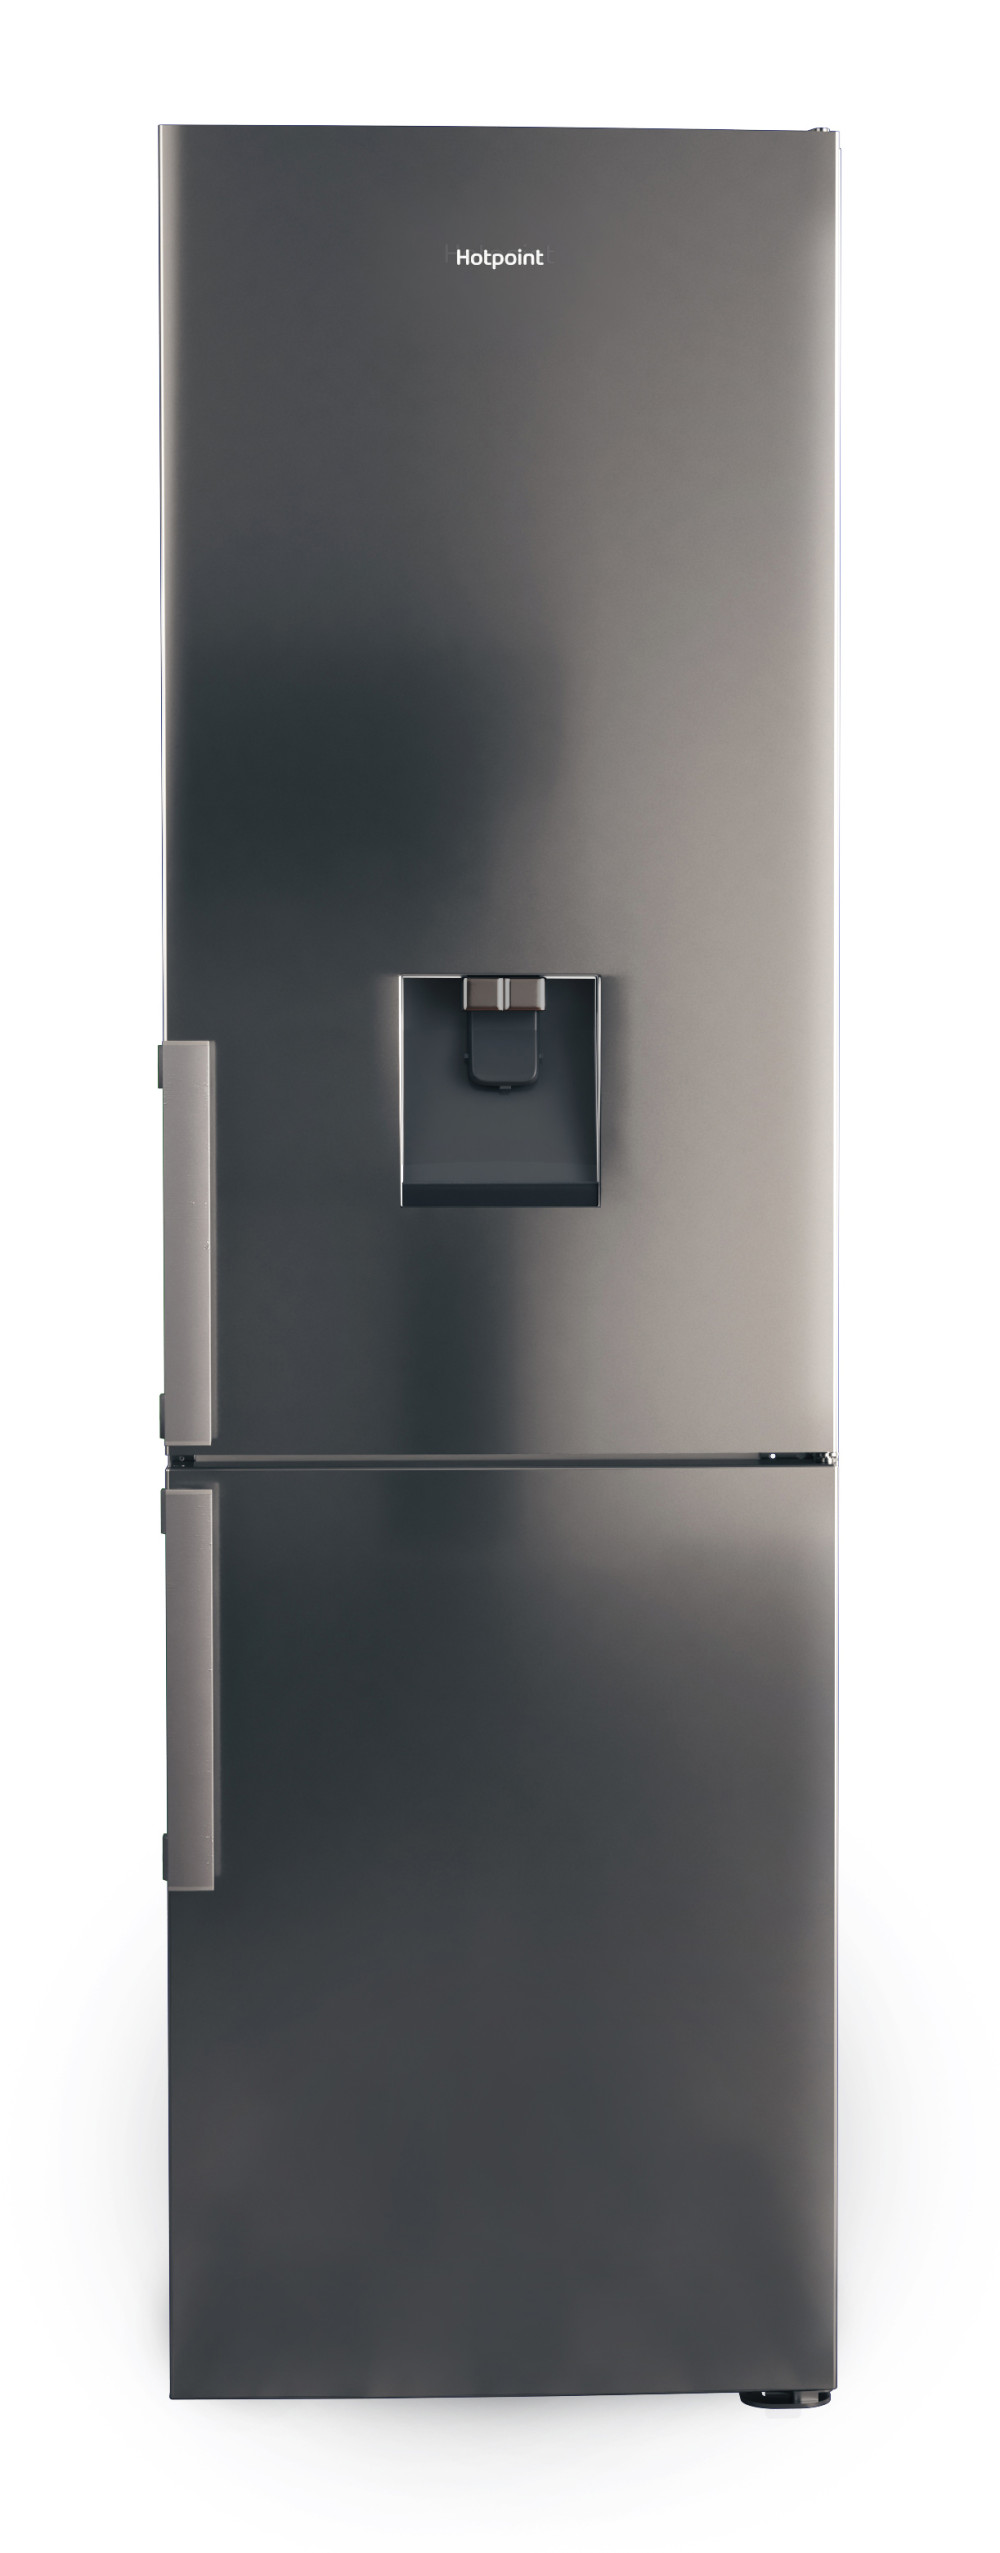 Hotpoint H7T 911A MX H AQUA Fridge Freezer featured image